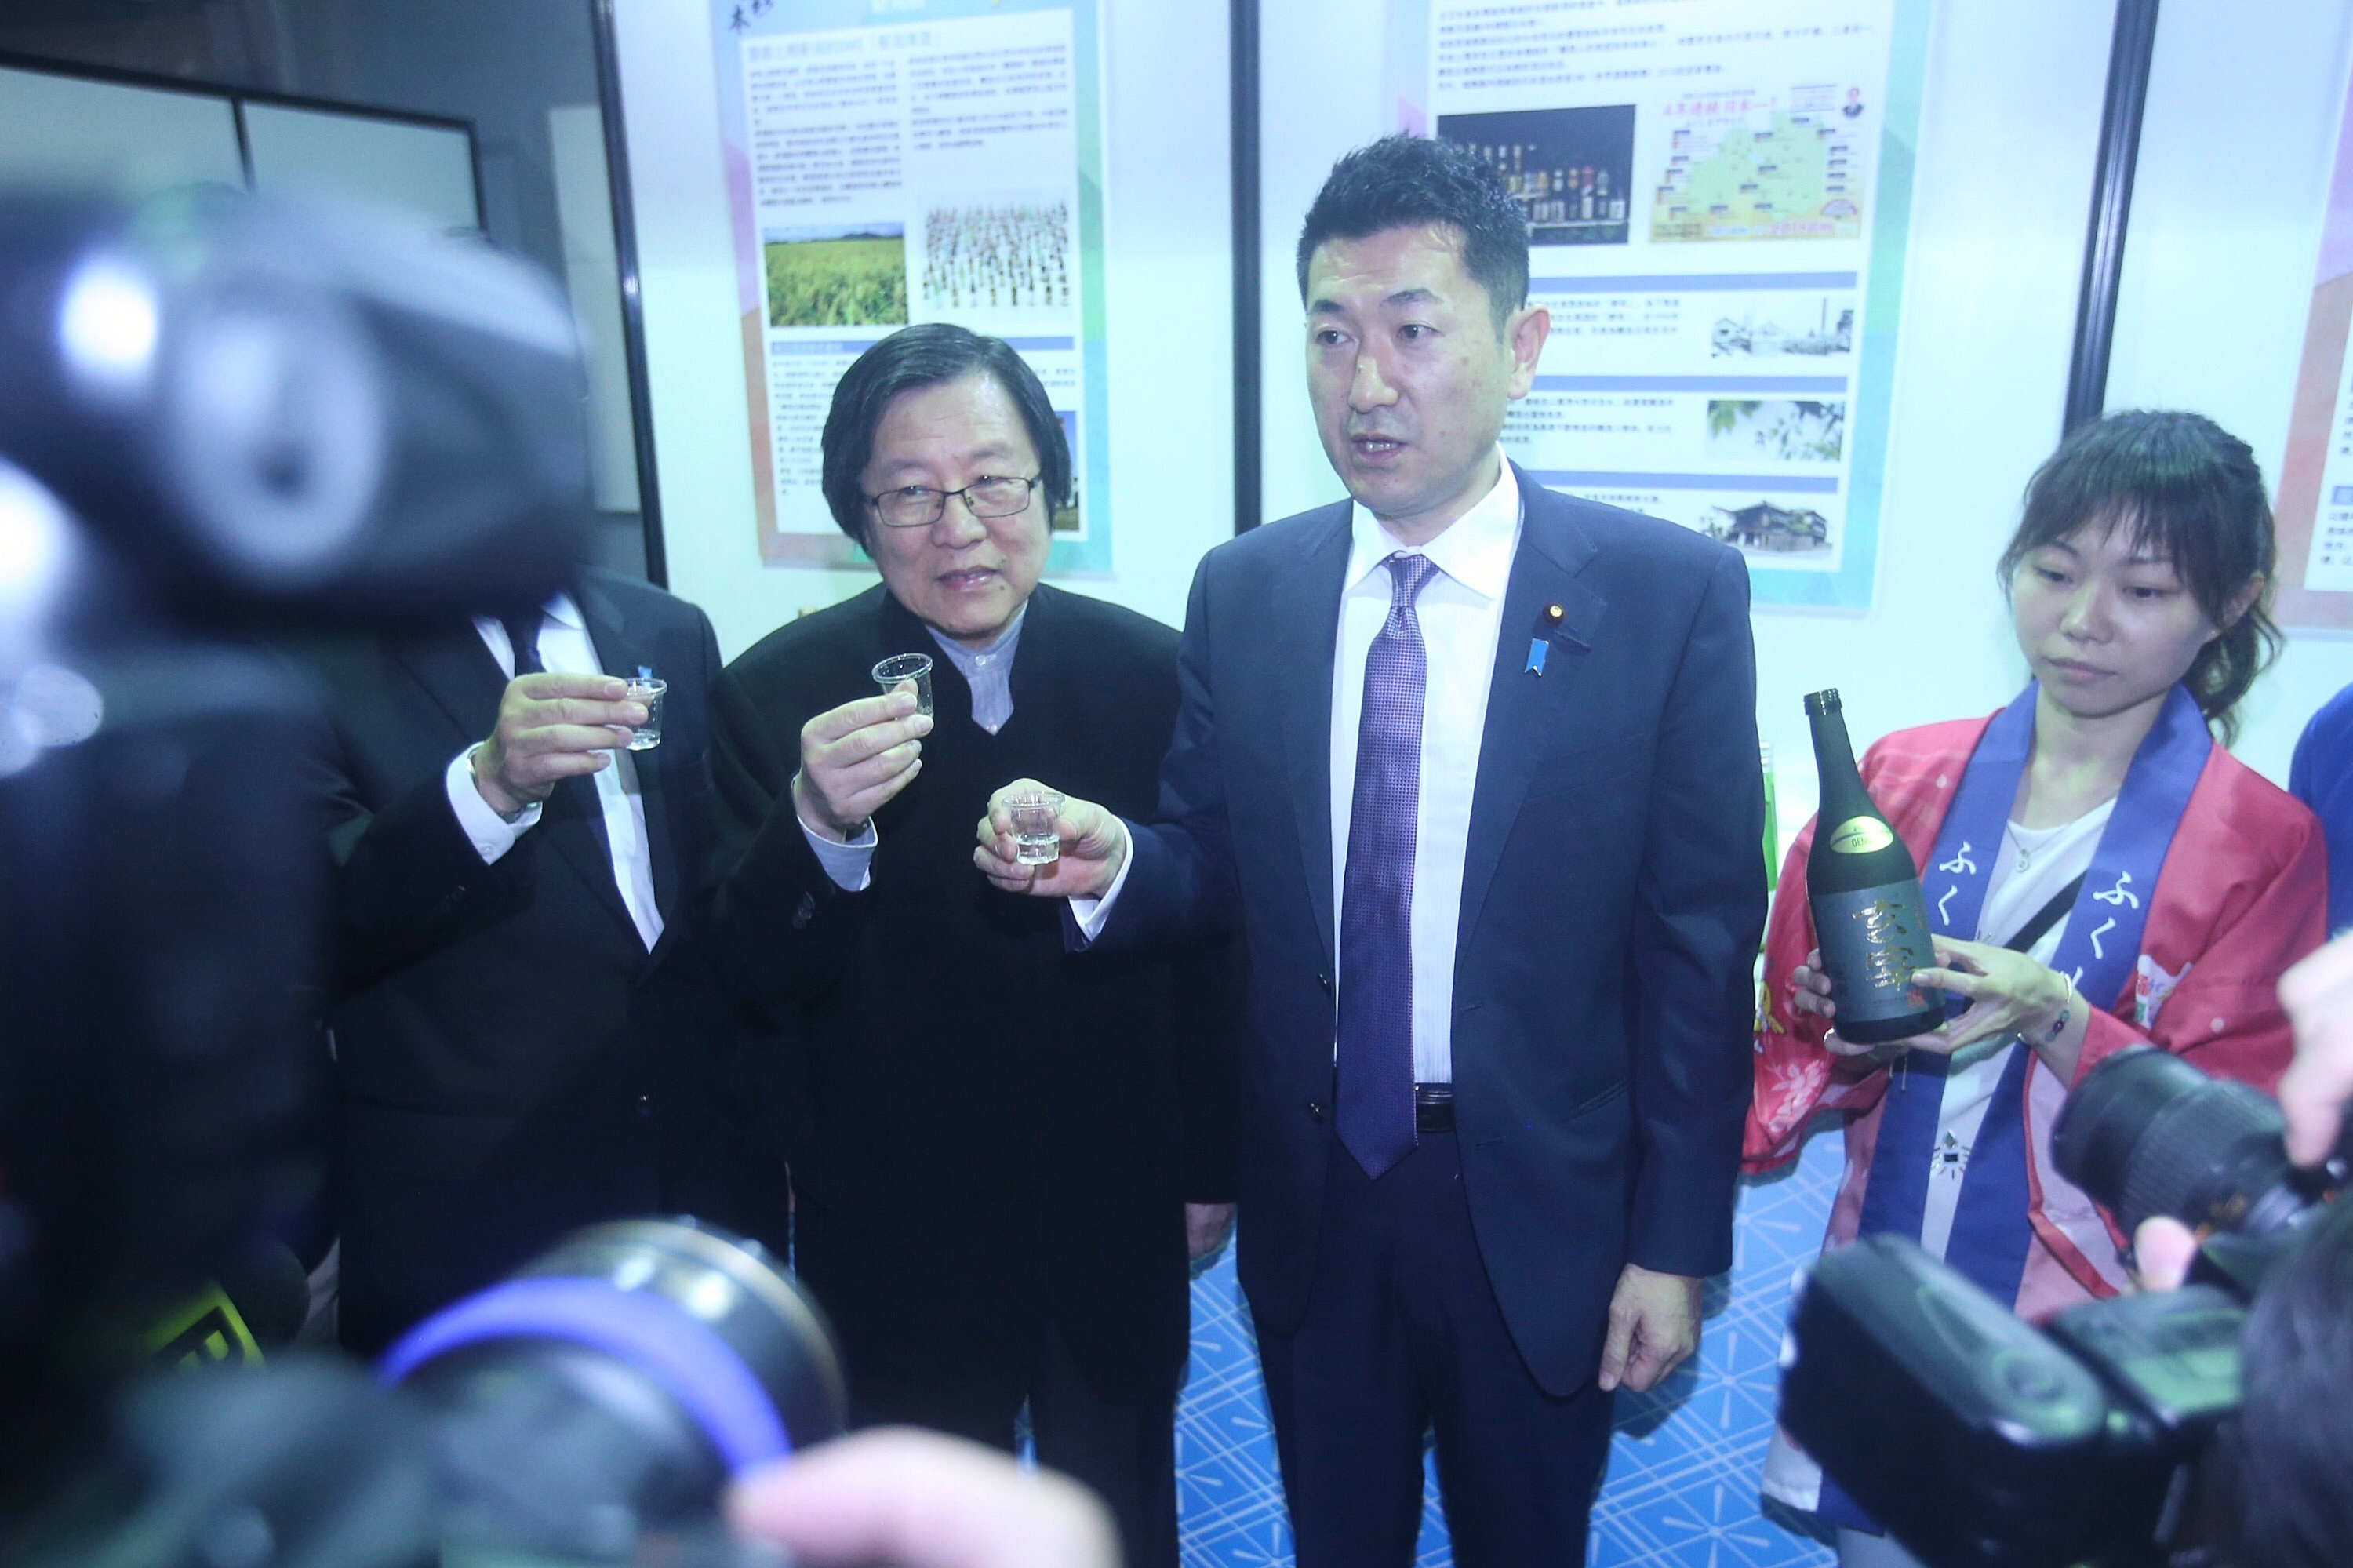 Japan Deputy Minister Akama (right) and Chiou (left)